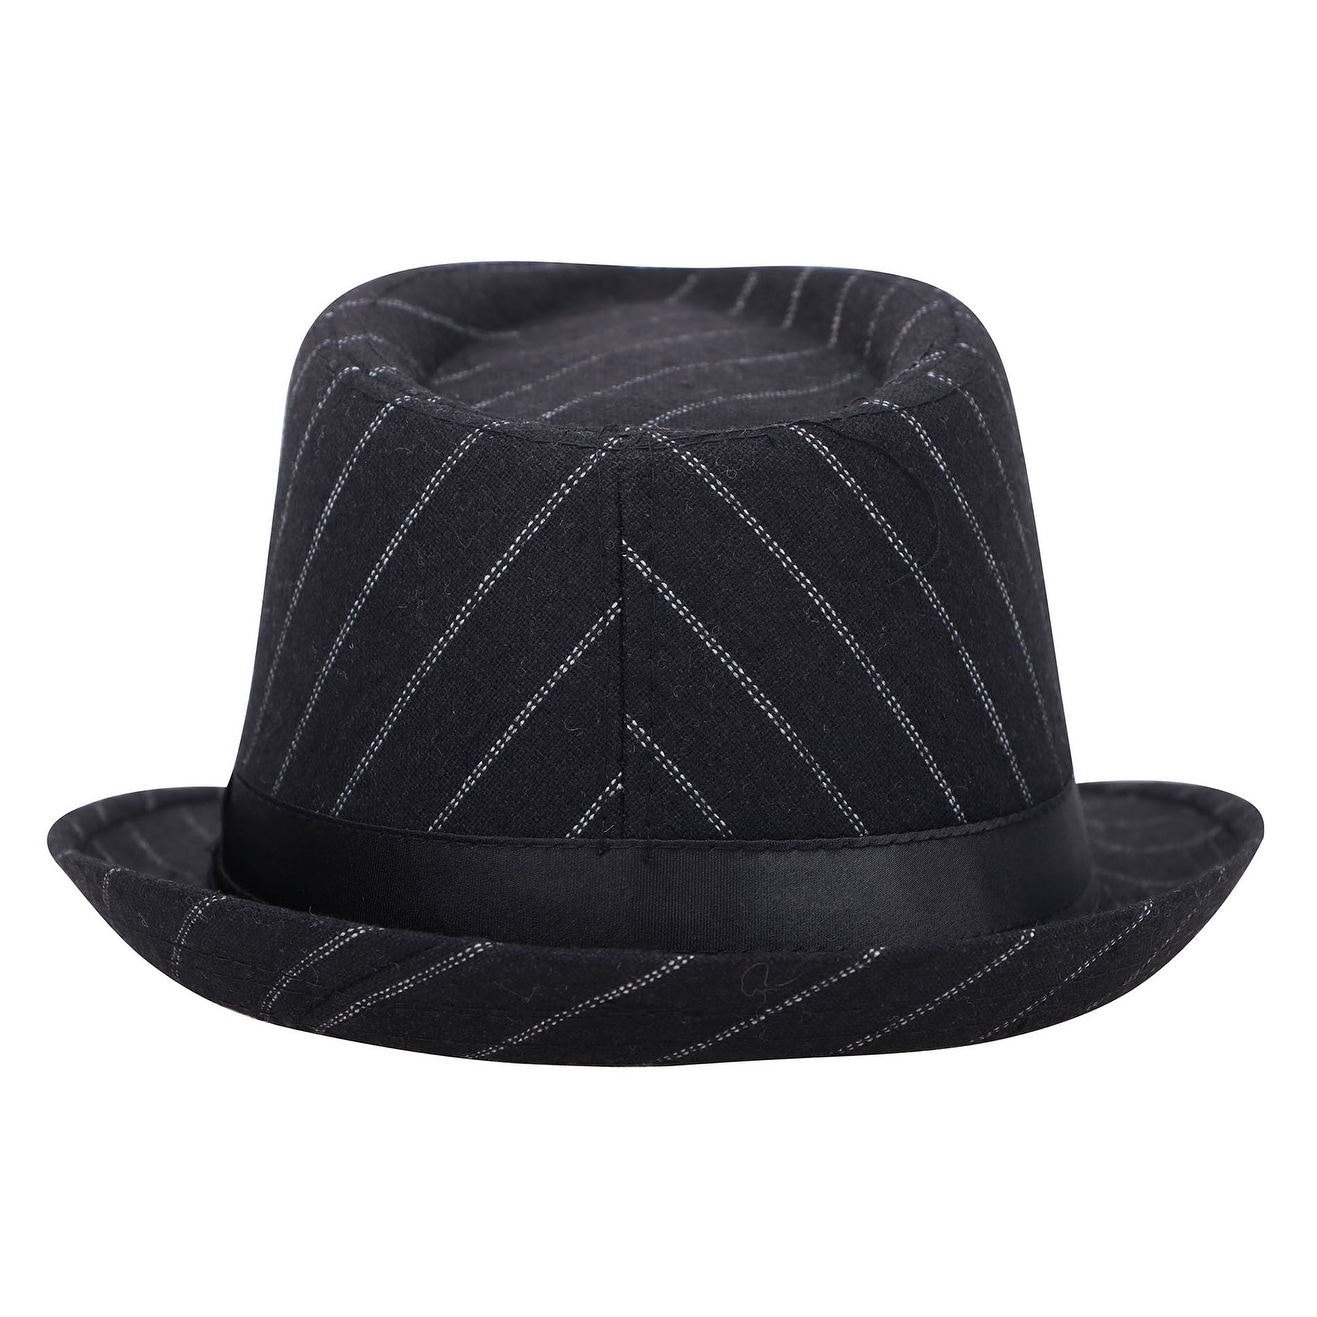 568b505301025 Shop Men s Classic Manhattan Structured Gangster Trilby Fedora Hat - On  Sale - Free Shipping On Orders Over  45 - Overstock - 27877176